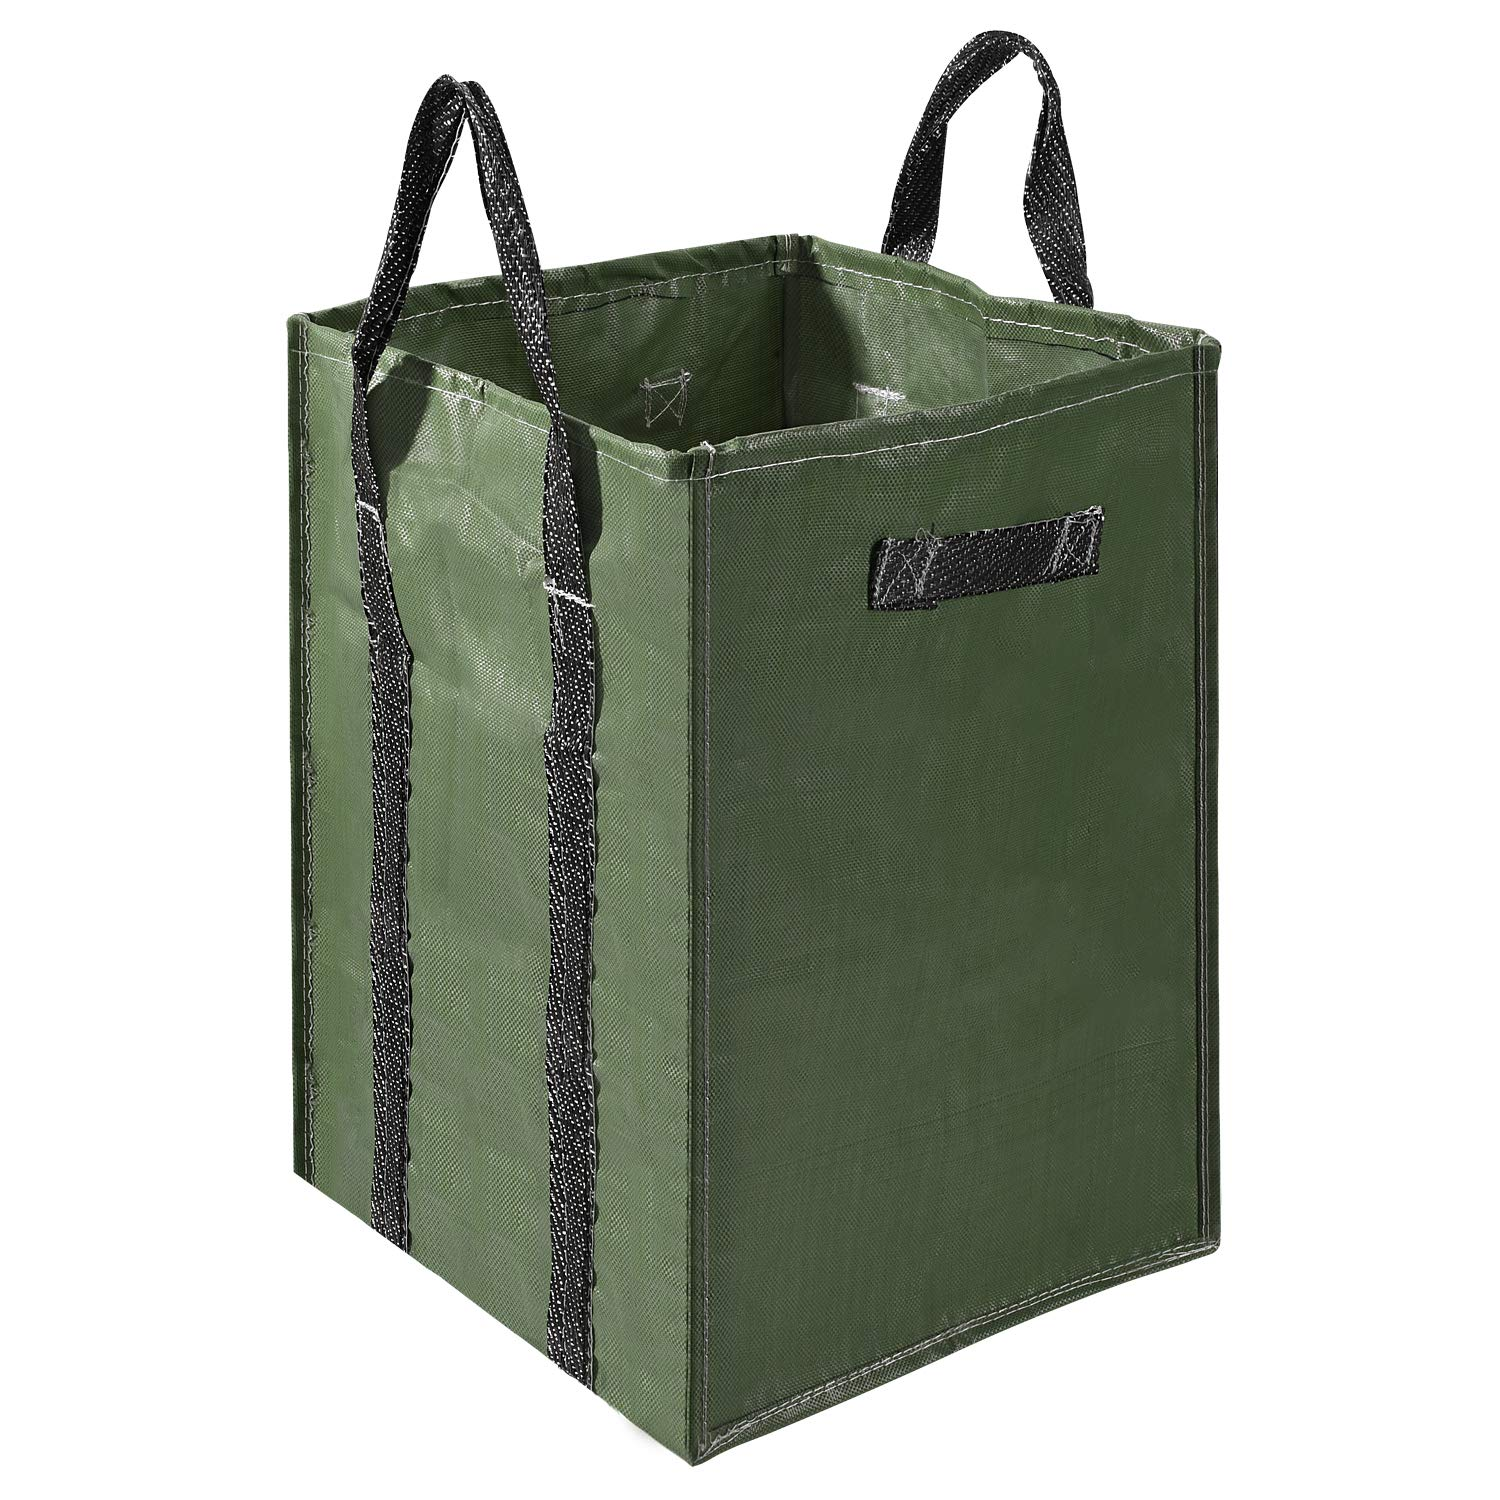 Delxo 48 Gallons Garden Bag 2 Pack Extra Large Reusable Leaf Bags 4 Handles Comparative Collapsible Gardening Containers for Lawn and Yard Waste by Delxo